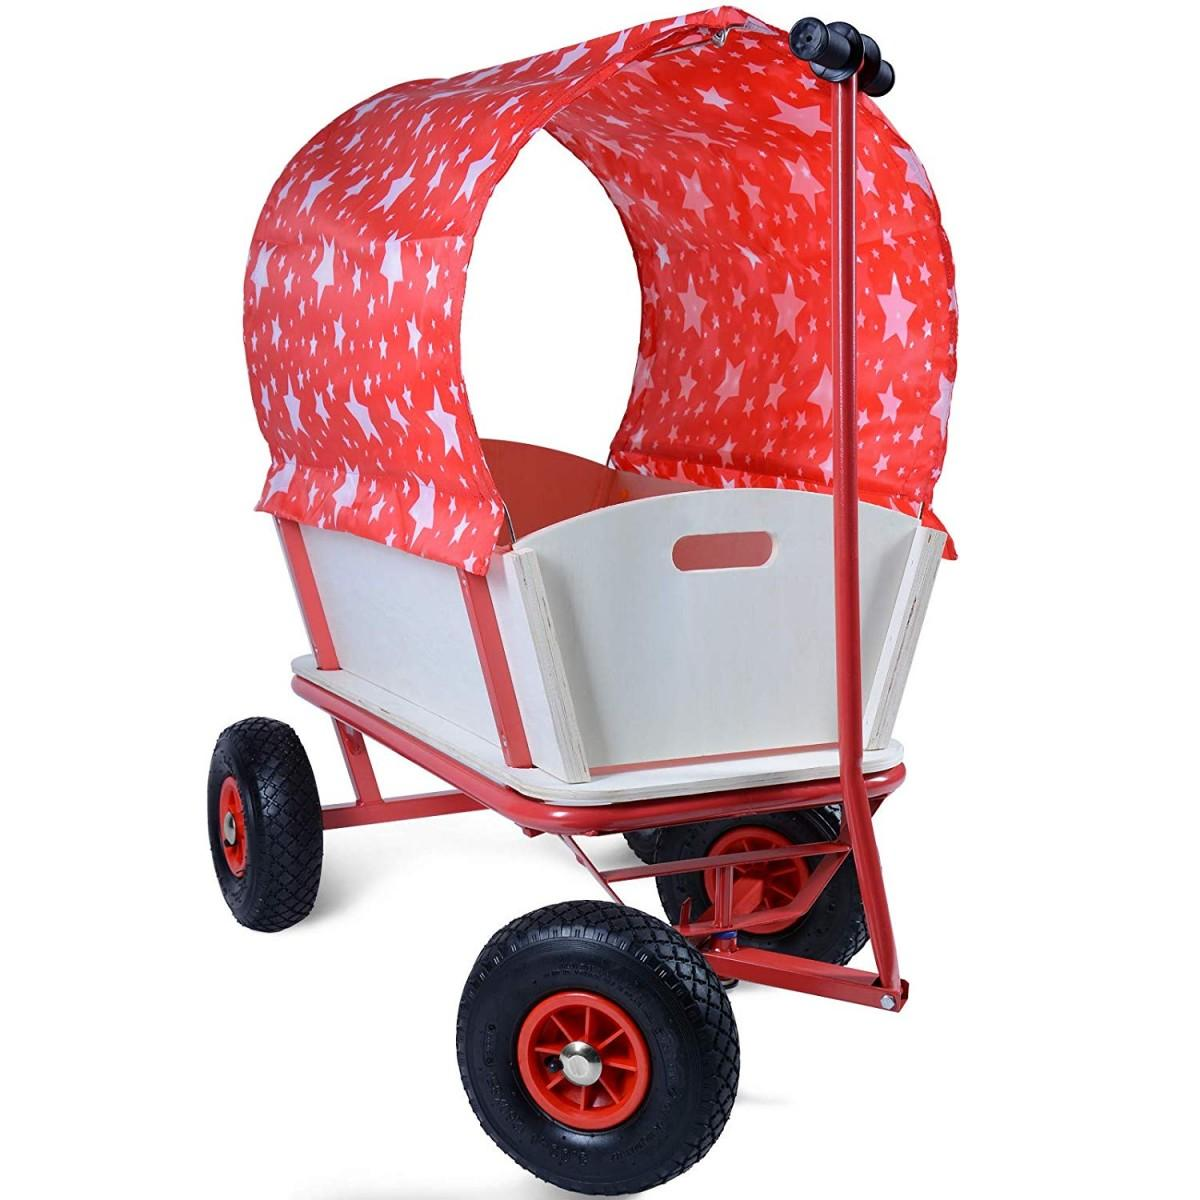 Handcart 4 Wheels with Roof, Wood, Max. 100 kg, 92 x 61 x 98 cm, red with stars